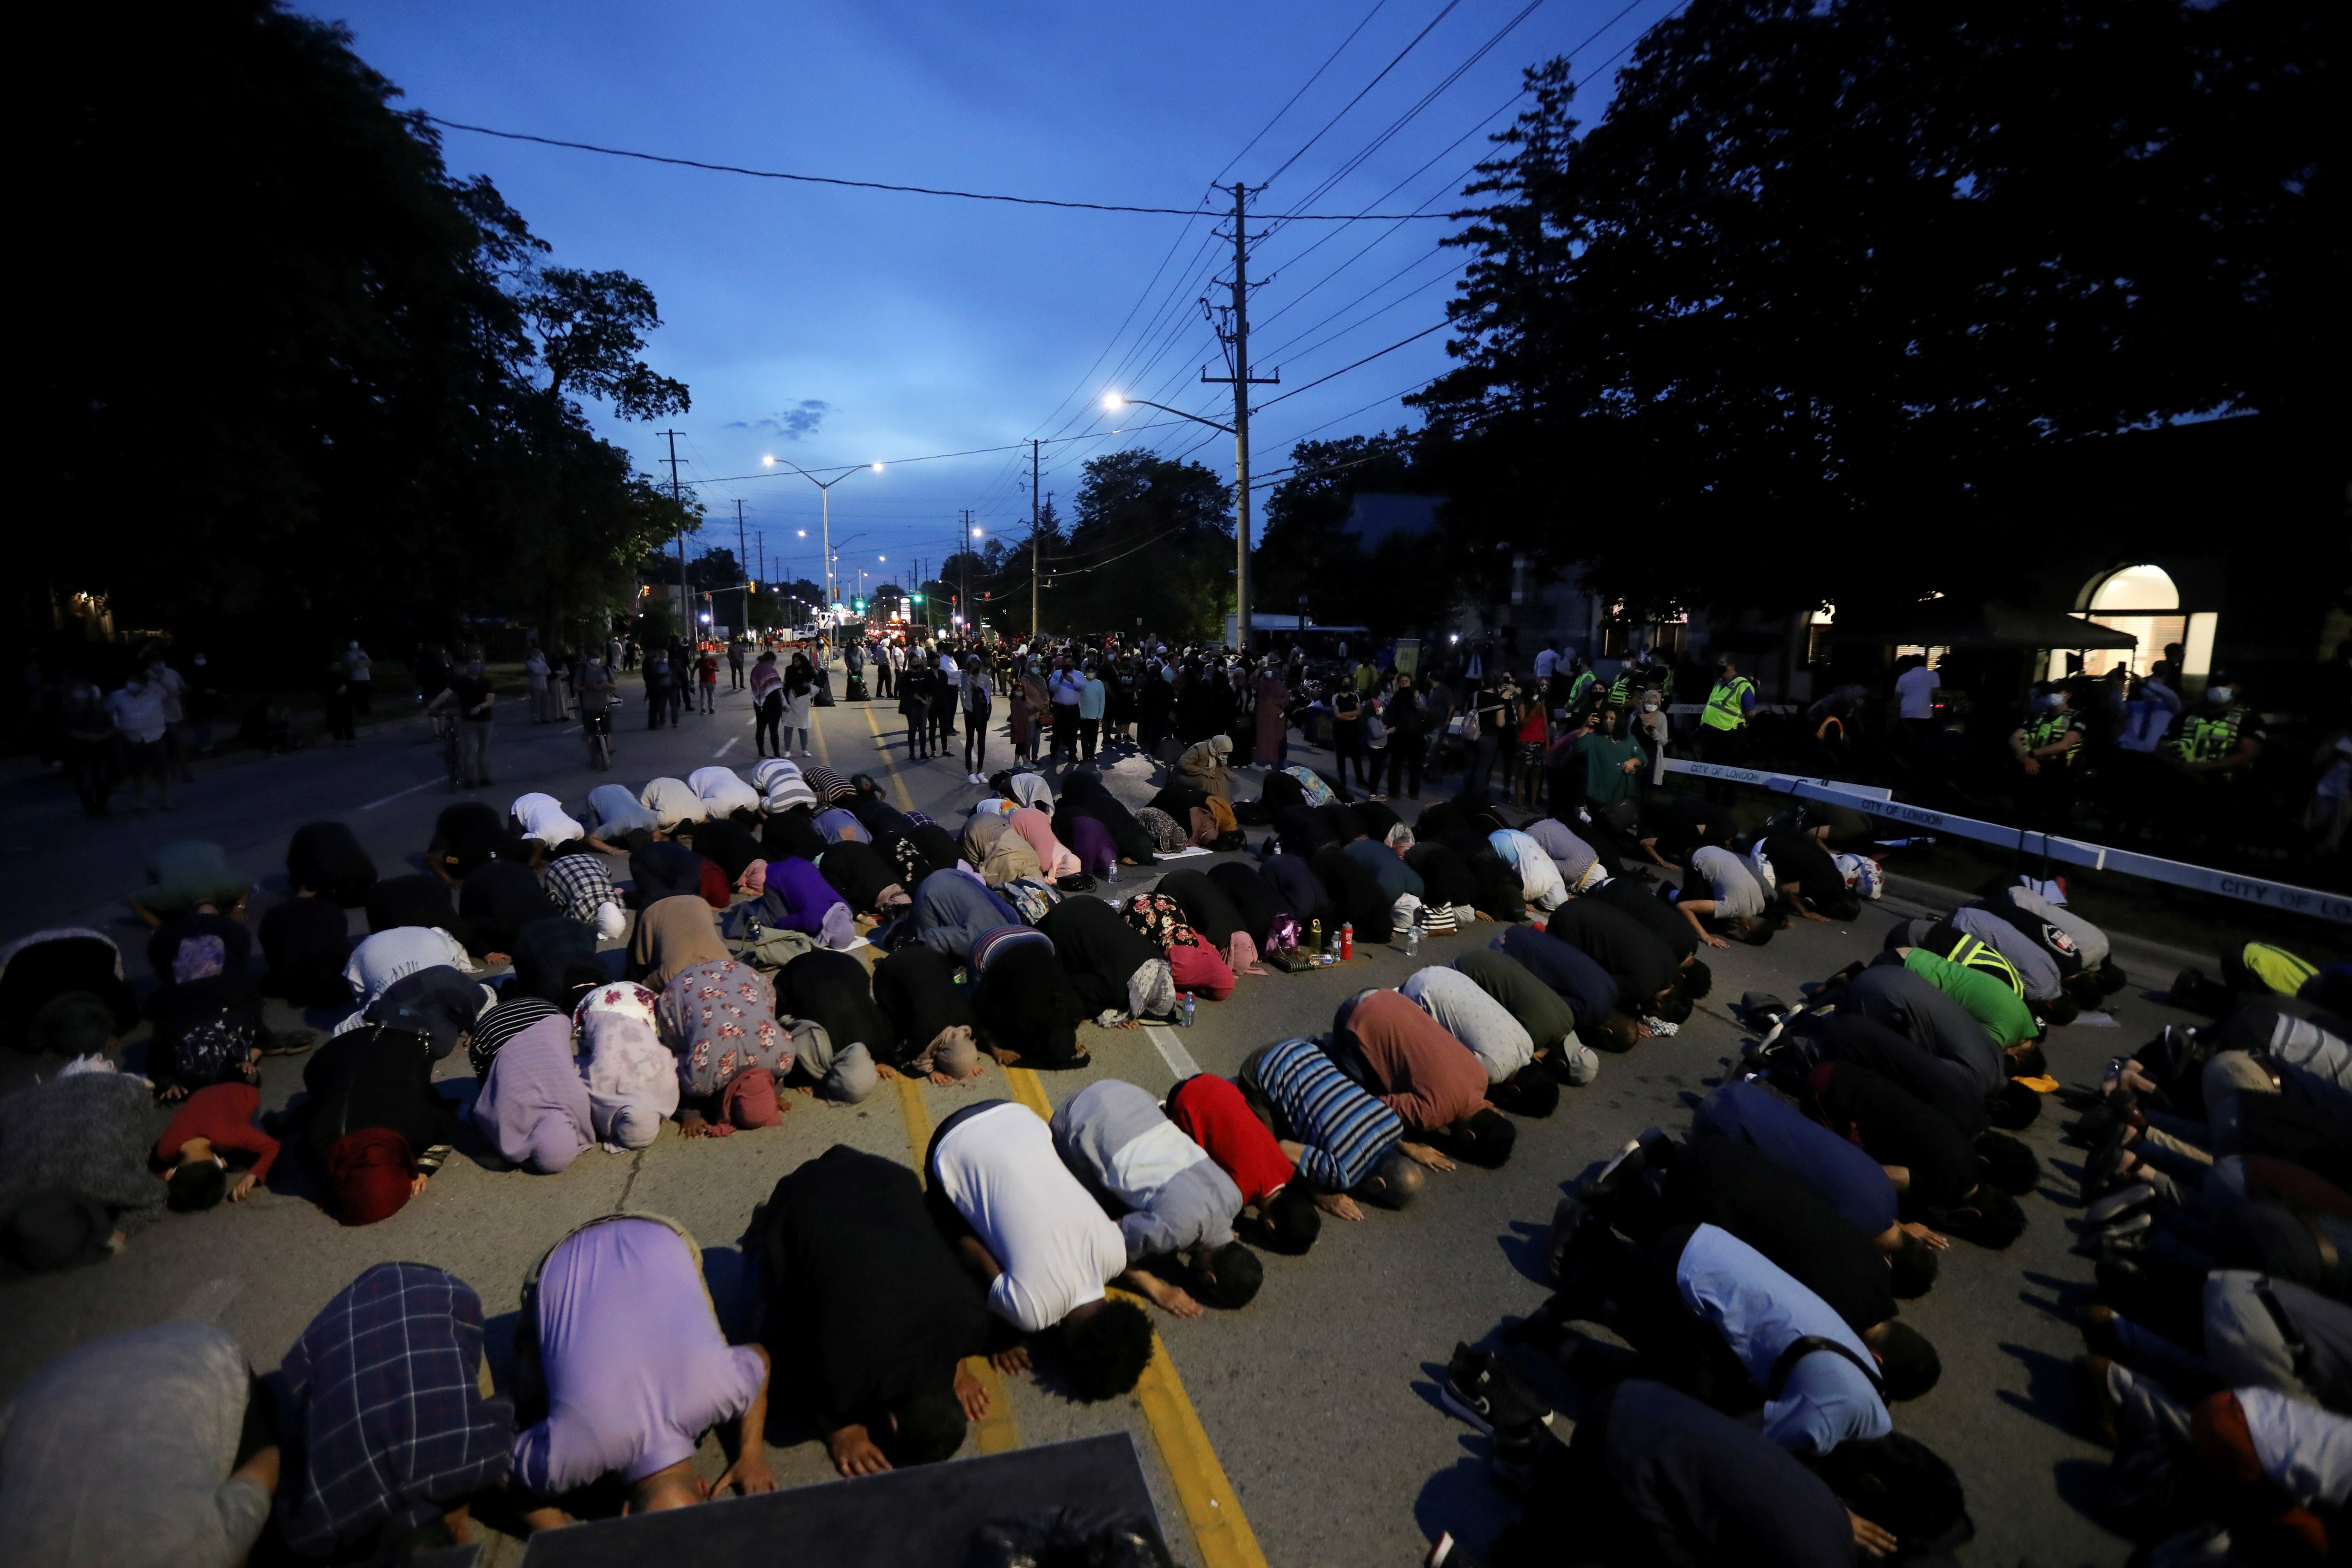 People pray following a vigil after four members of a Muslim family were killed in what police describe as a hate-motivated attack at London Muslim Mosque in London, Ontario, Canada, June 8, 2021. REUTERS/Carlos Osorio/File Photo